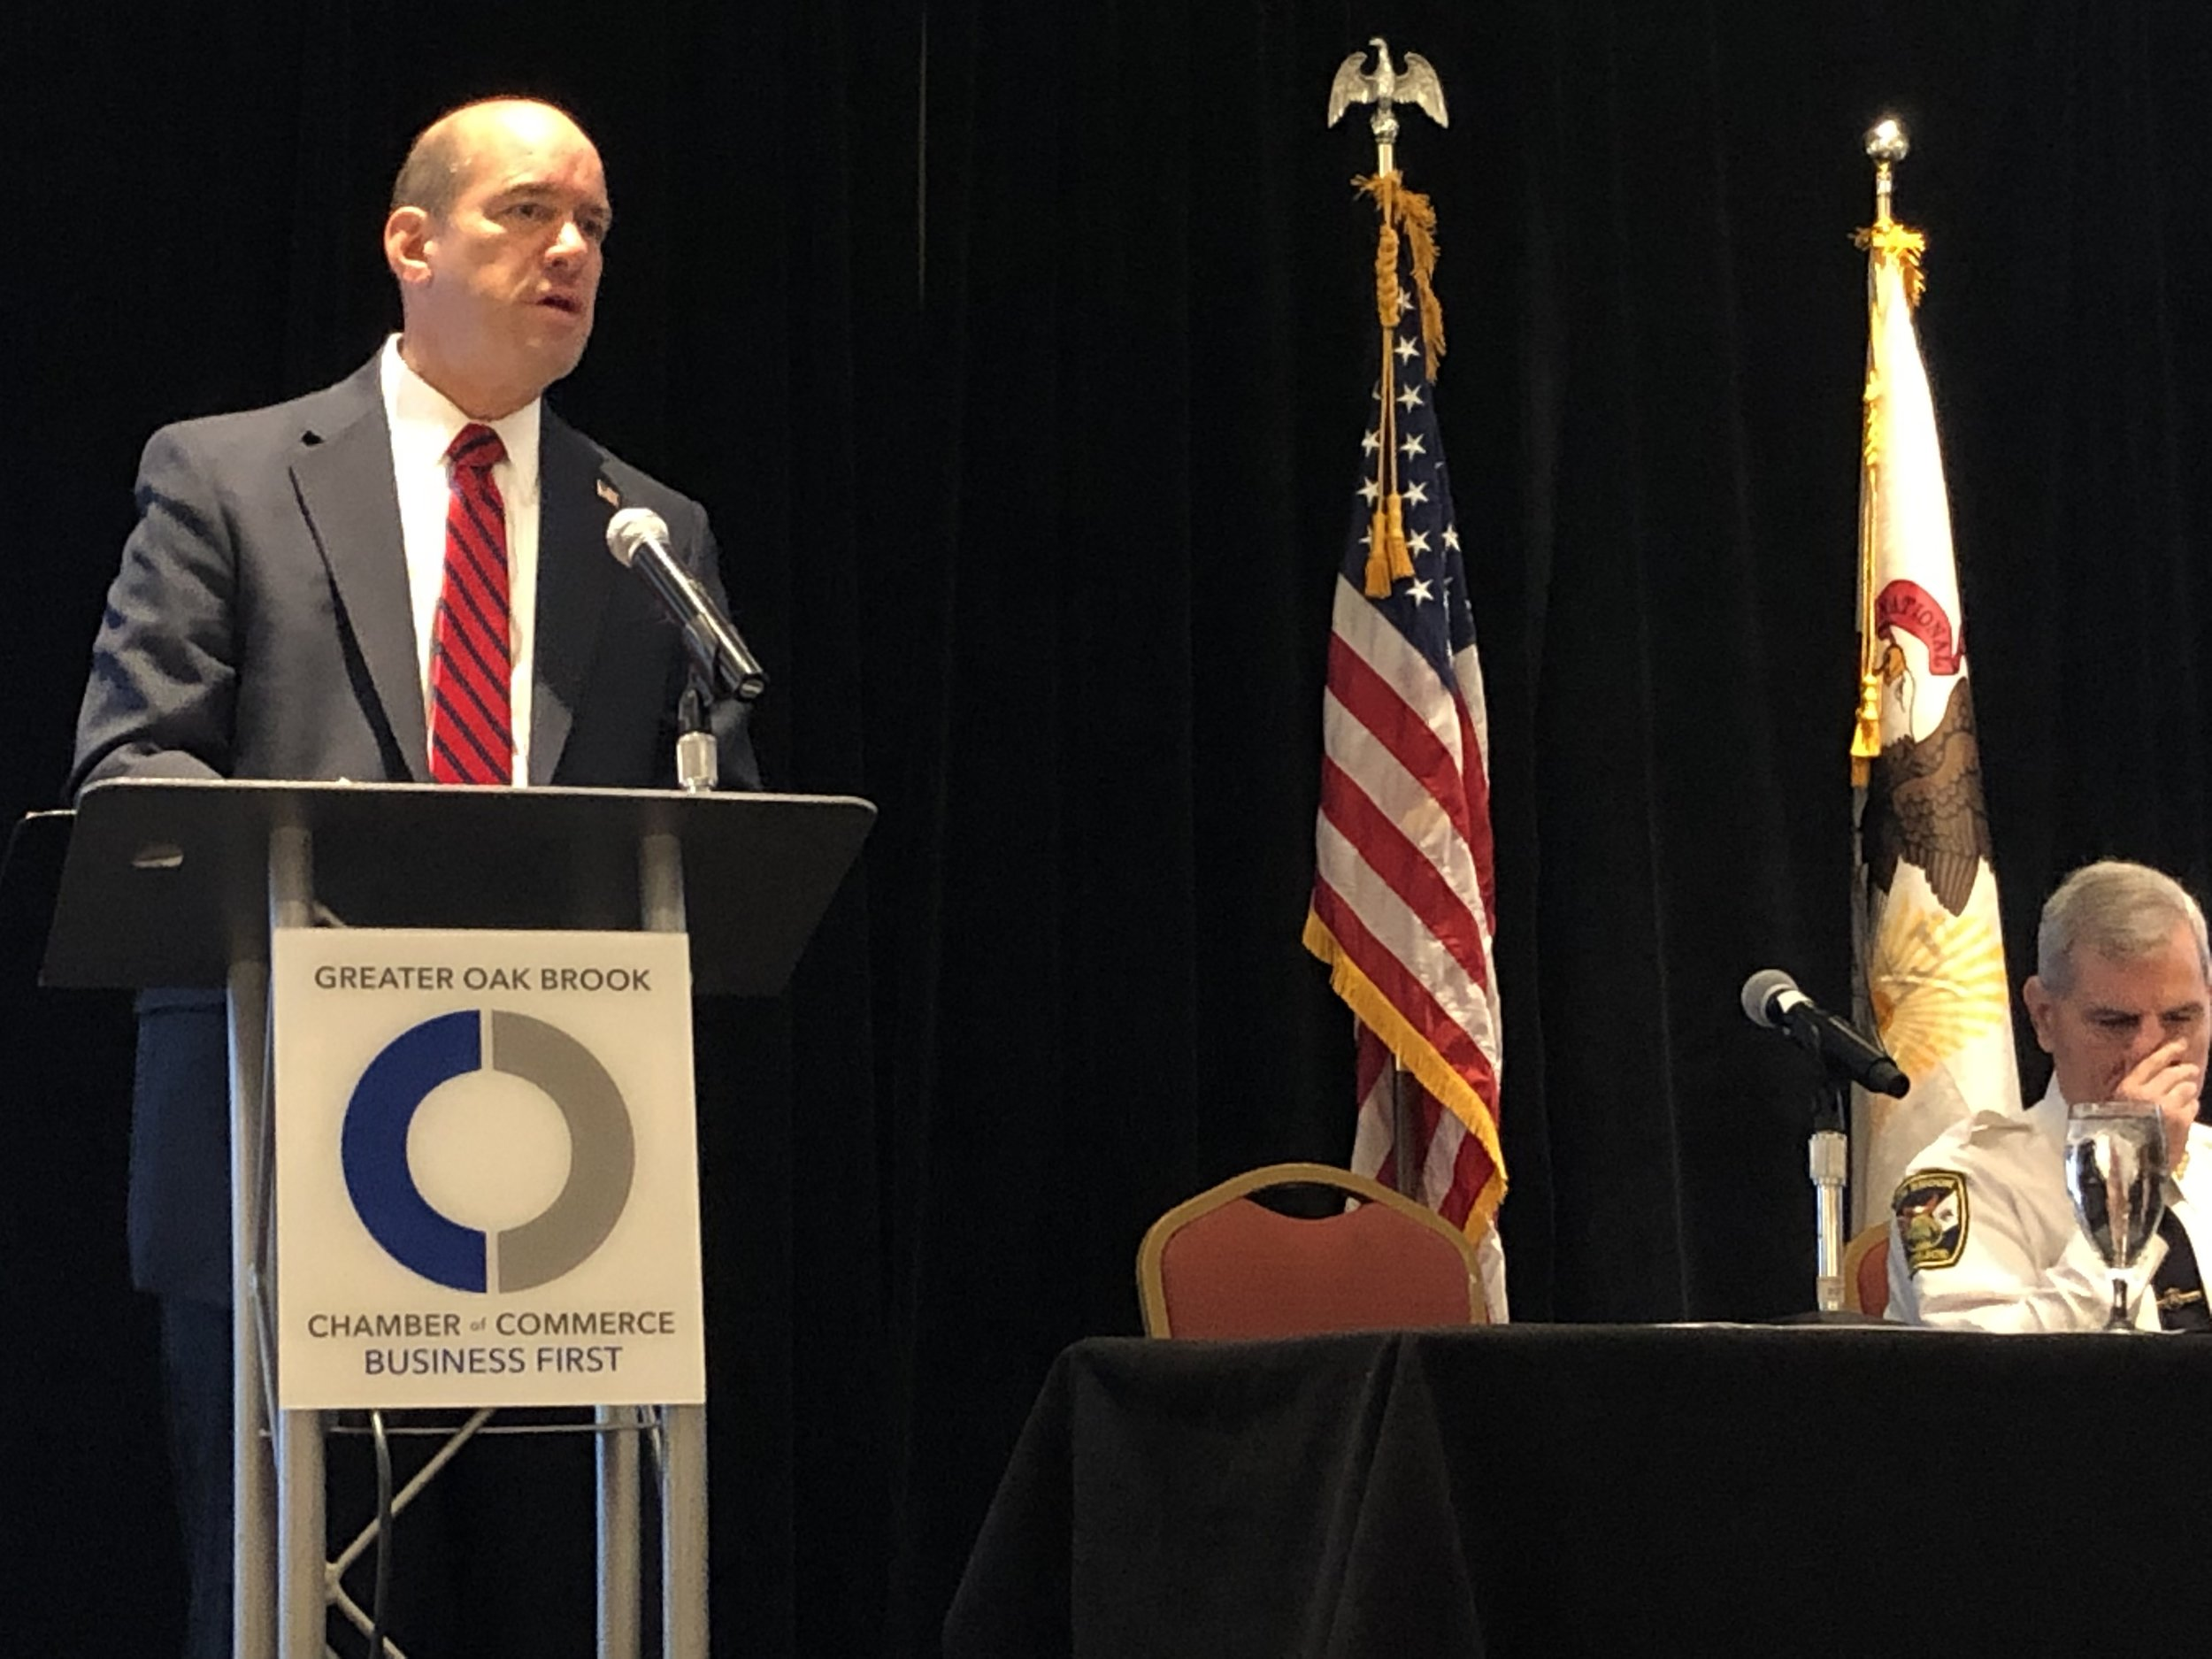 DuPage County State's Attorney Bob Berlin speaks at the Community and Workplace Safety Forum in Oak Brook.